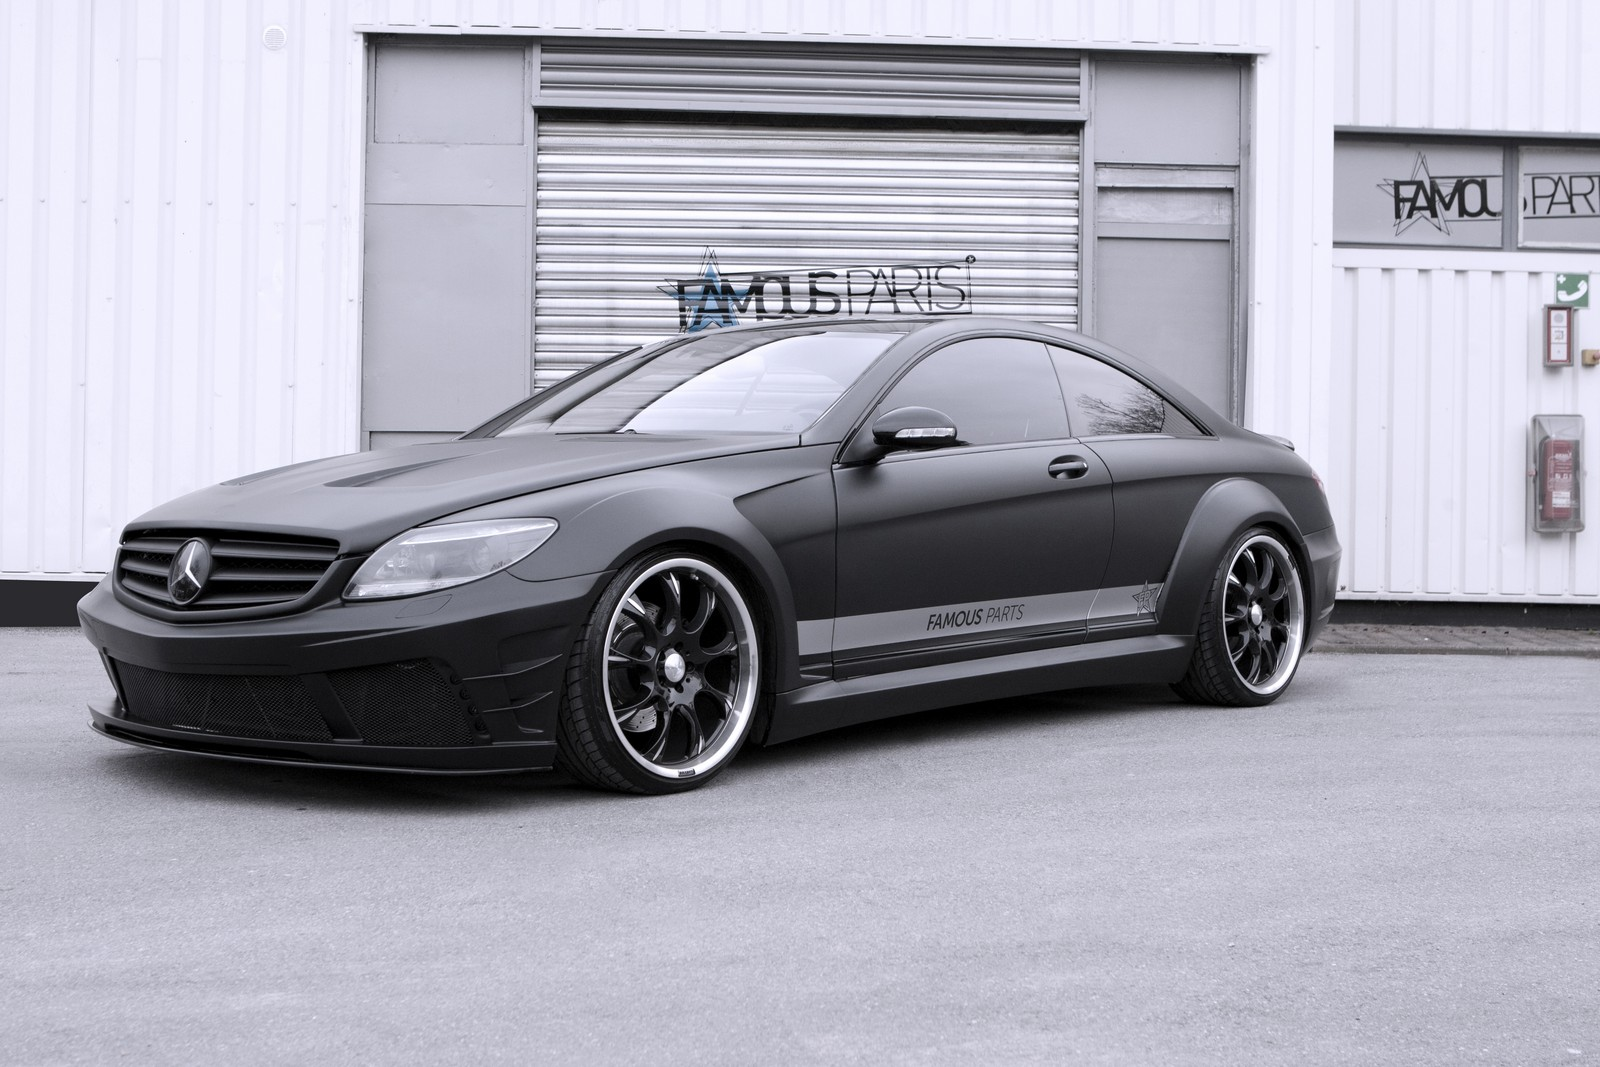 Moonshine matte black mercedes benz cl 500 by famous parts for Mercedes benz used body parts